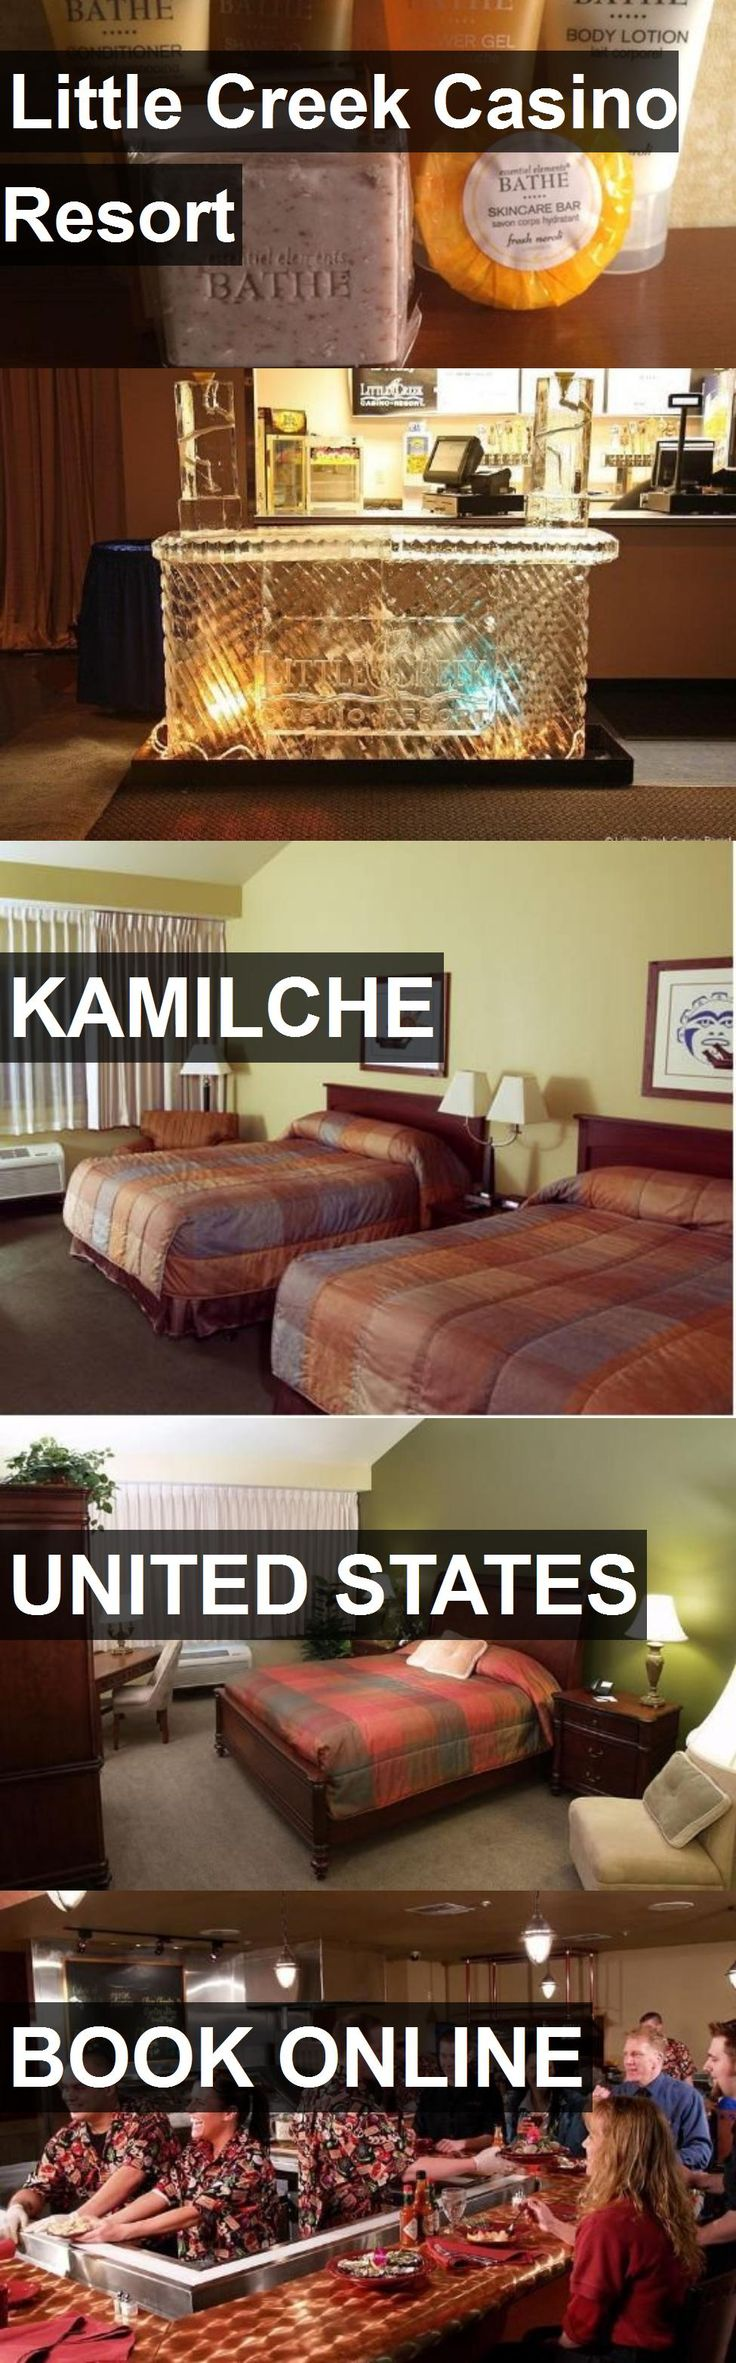 Hotel Little Creek Casino Resort in Kamilche, United States. For more information, photos, reviews and best prices please follow the link. #UnitedStates #Kamilche #travel #vacation #hotel